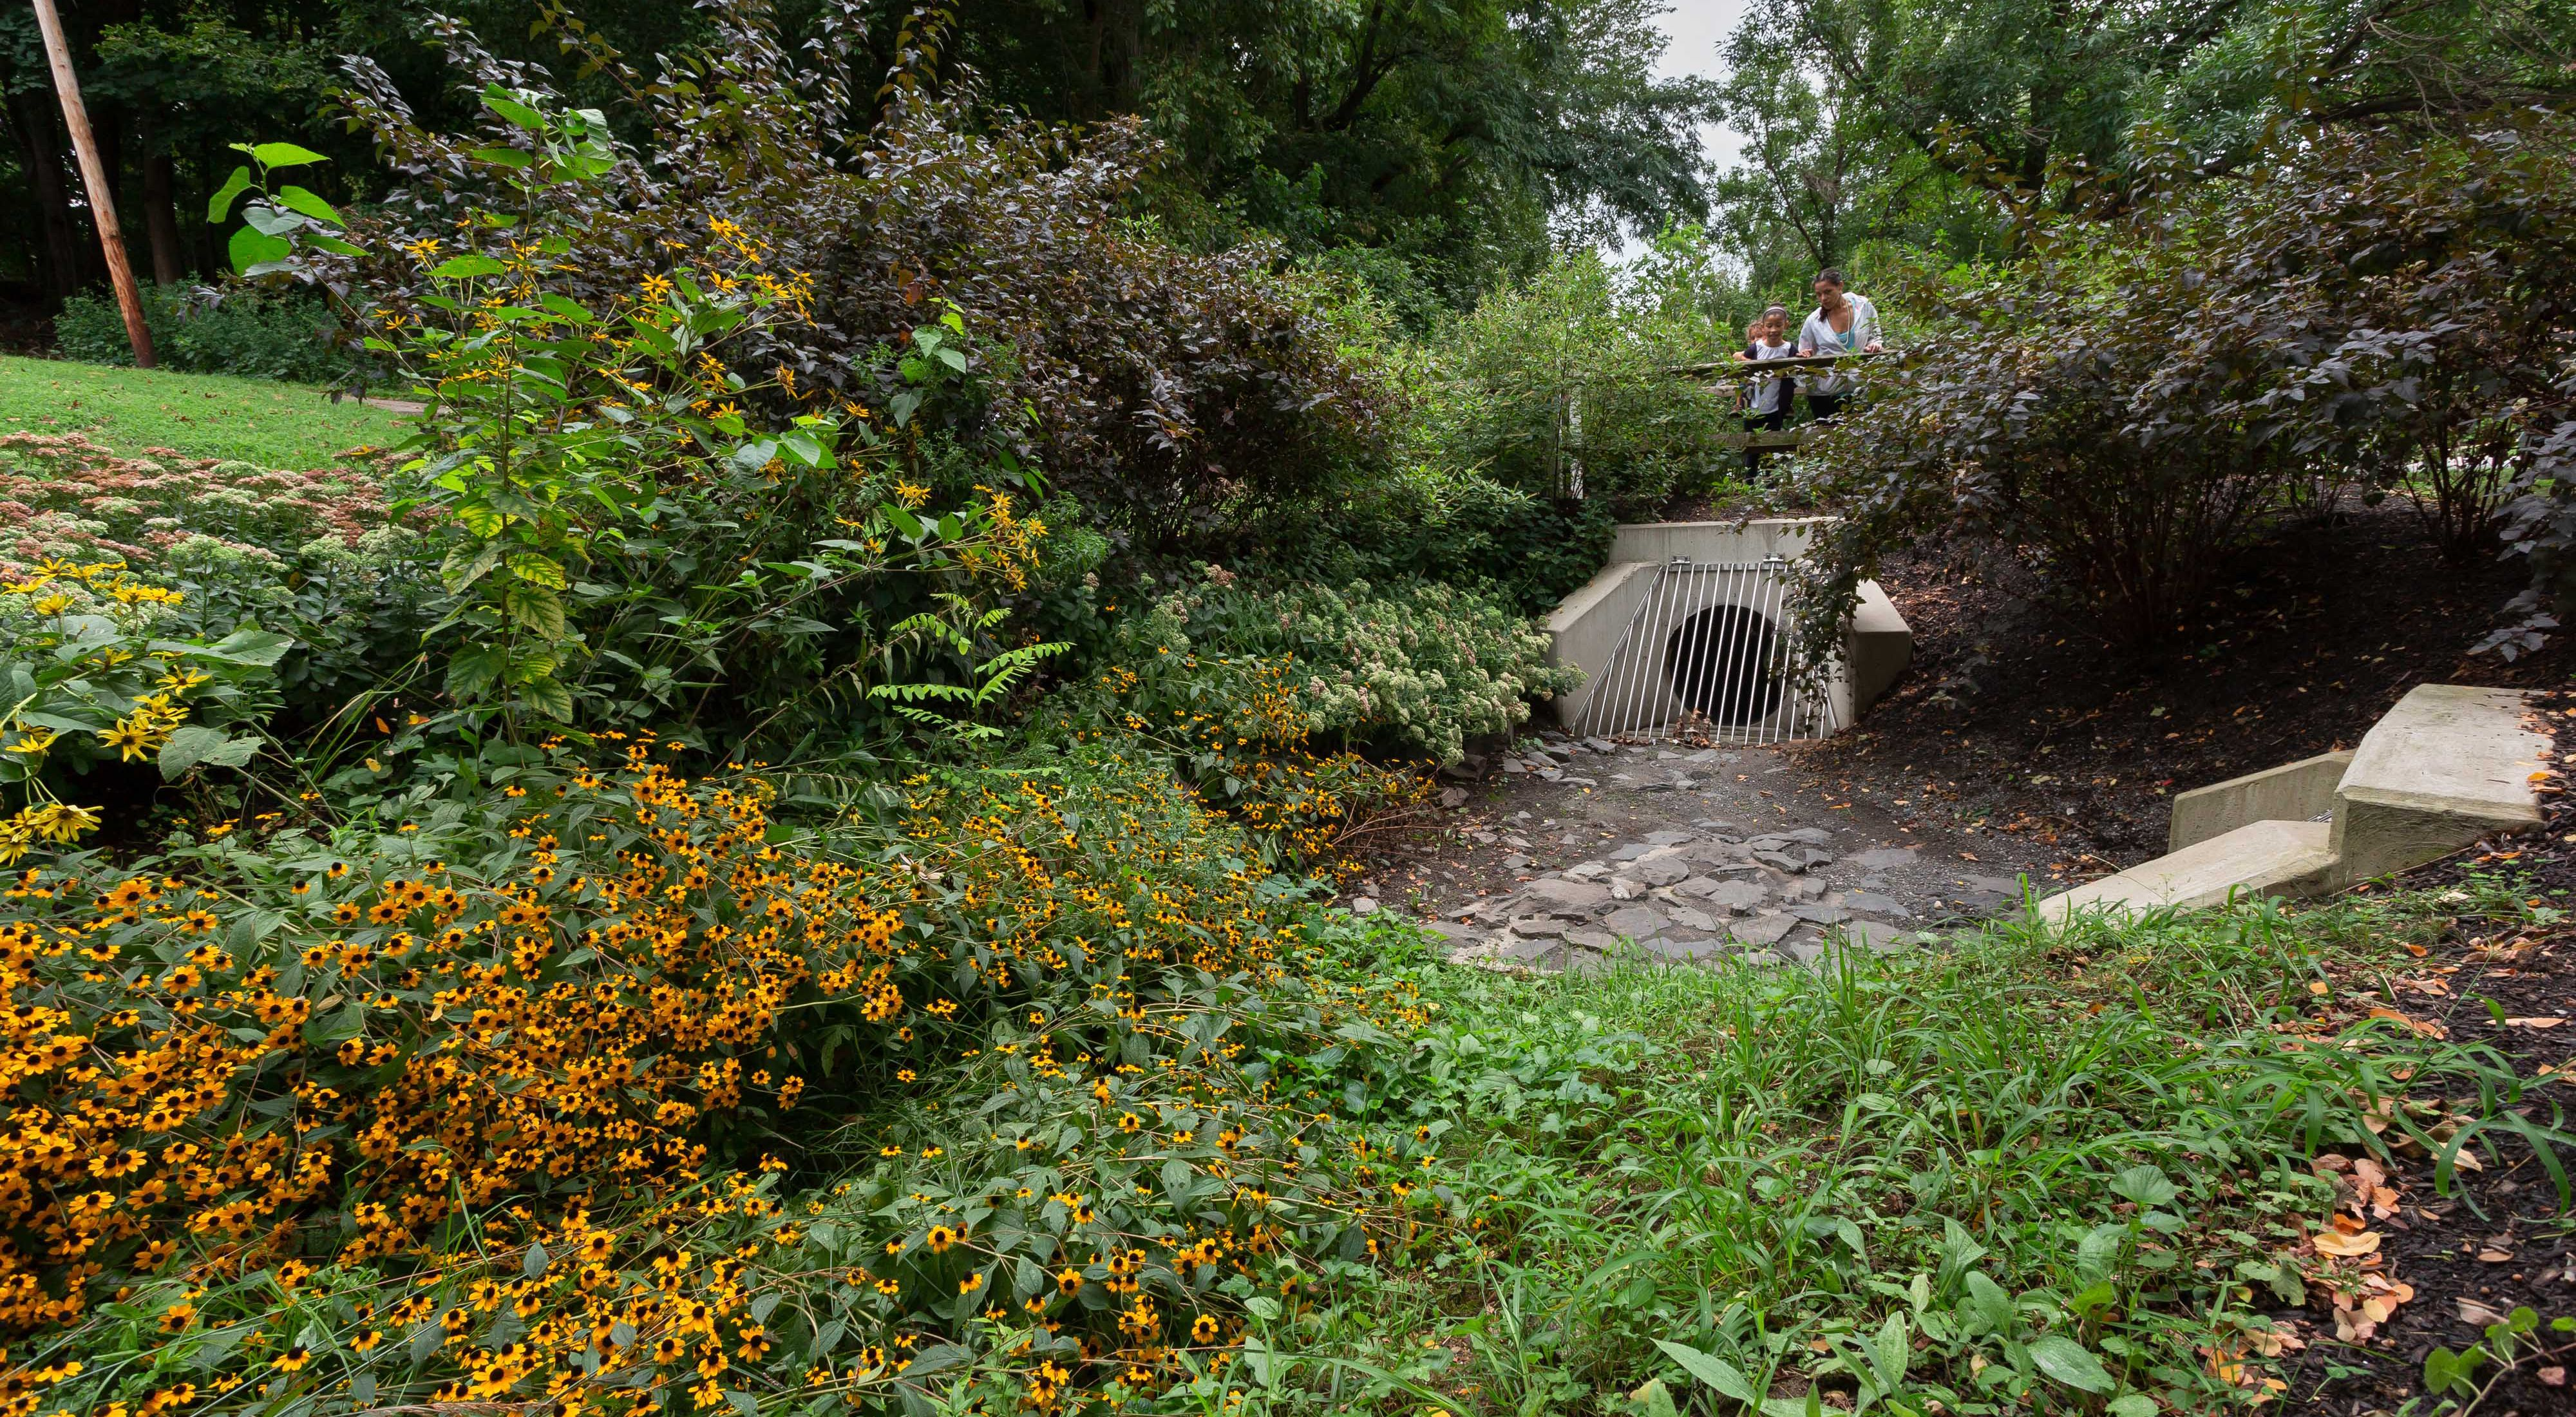 a culvert sitting under a bridge is surrounded by plants and flowers